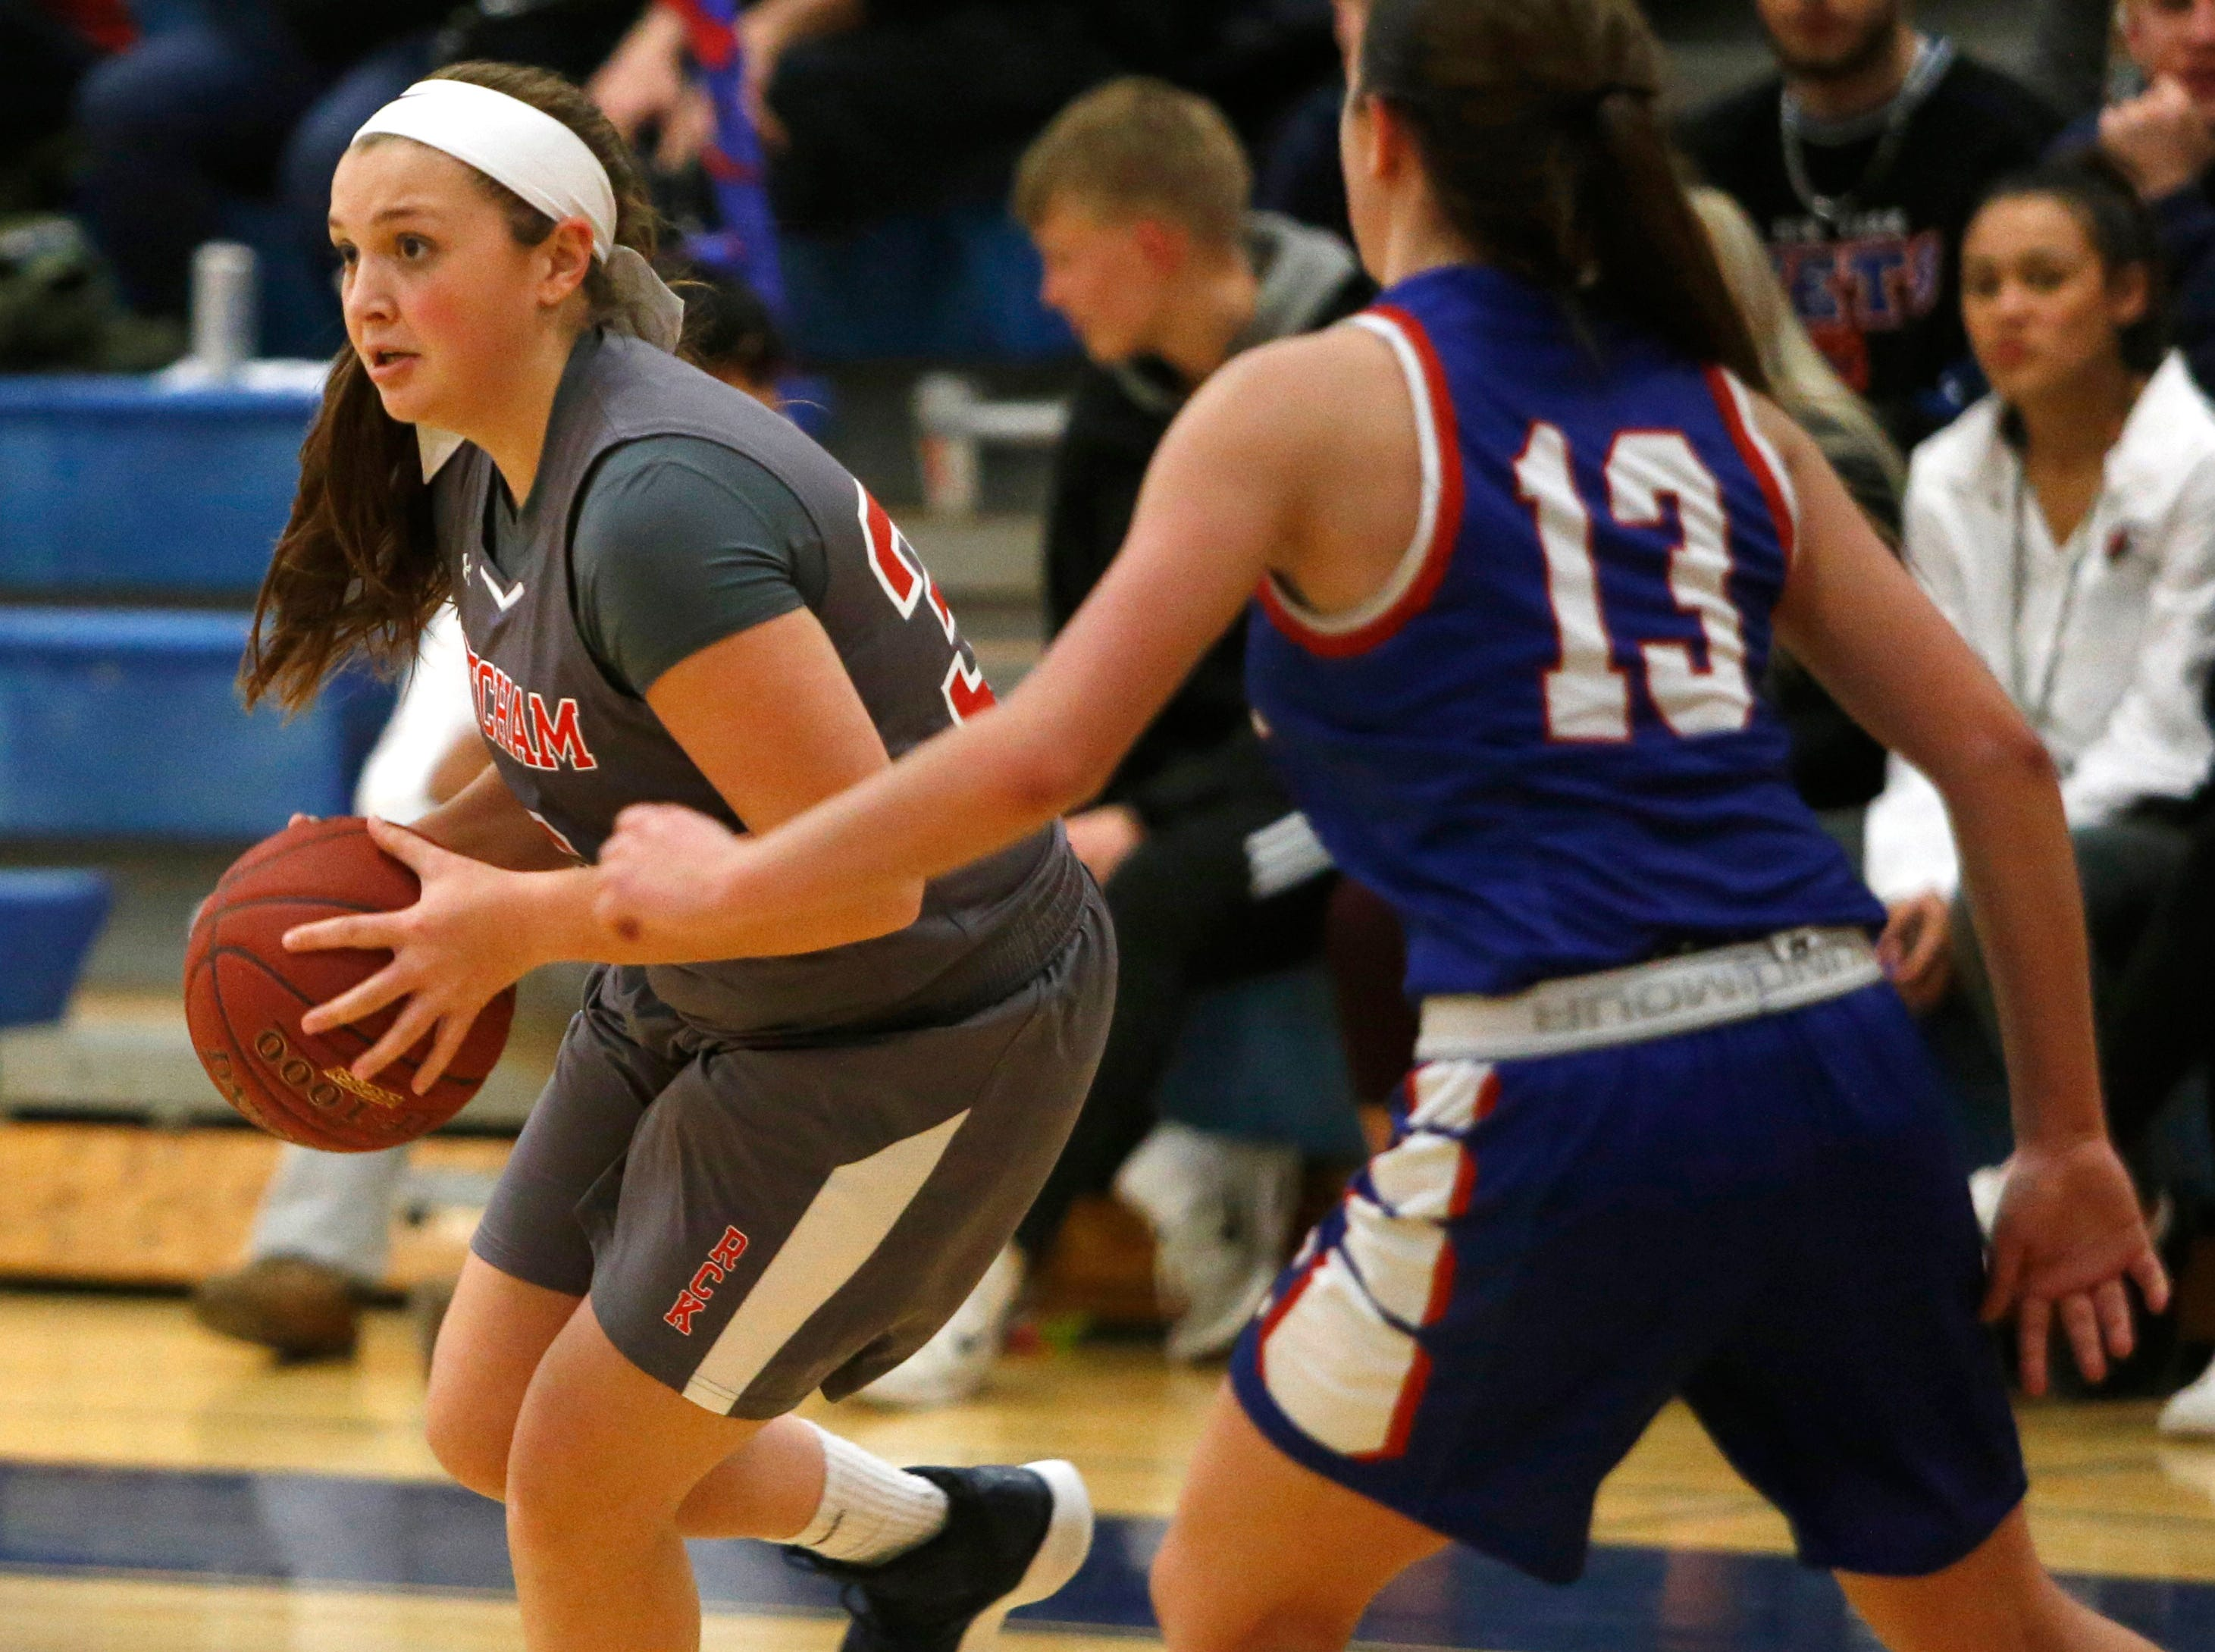 Ketcham's Kayla Howley clears Carmel's Danielle Bello during Thursday's game on February 14, 2019.